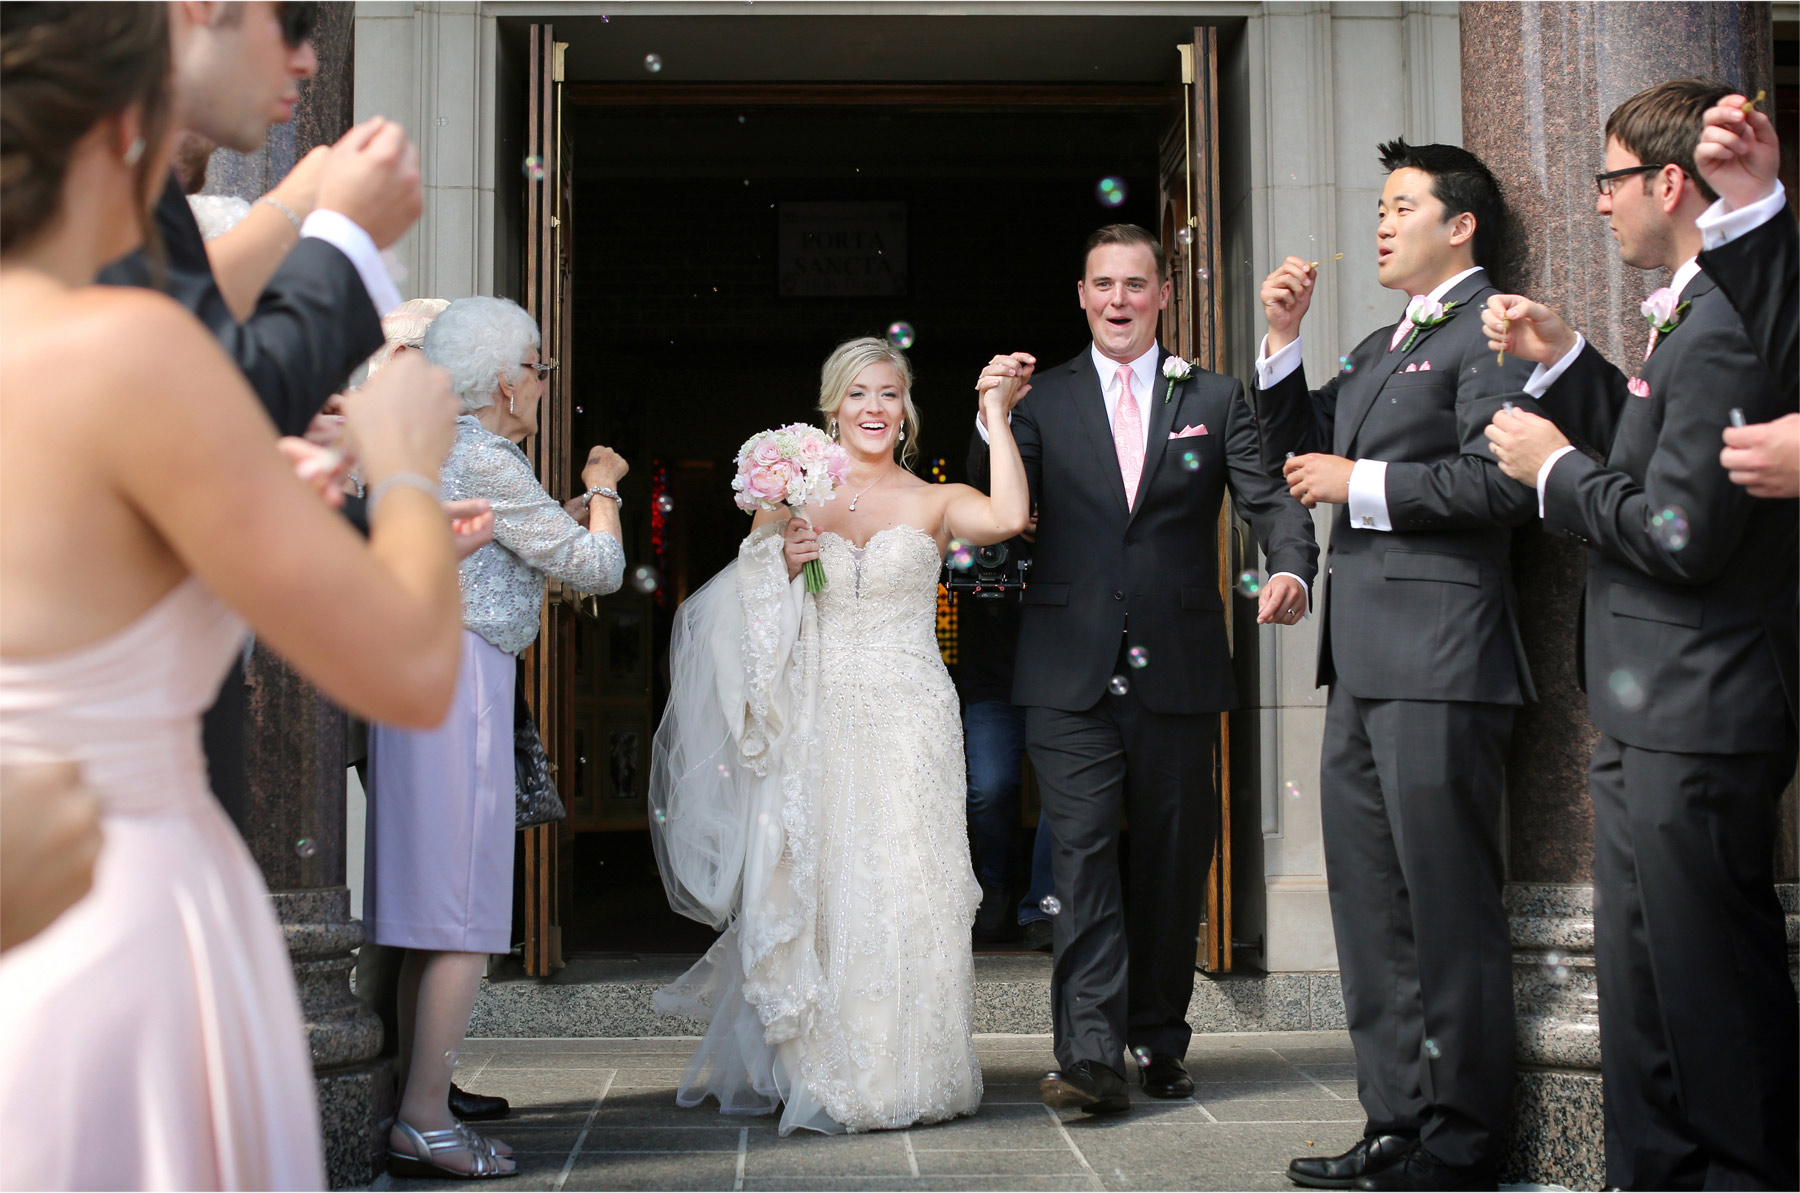 11-Duluth-Minnesota-Wedding-Photographer-by-Andrew-Vick-Photography-Summer-Cathedral-of-Our-Lady-of-the-Rosary-Church--Bride-Groom-Bubbles-Excitement-Lindsey-and-Adam.jpg